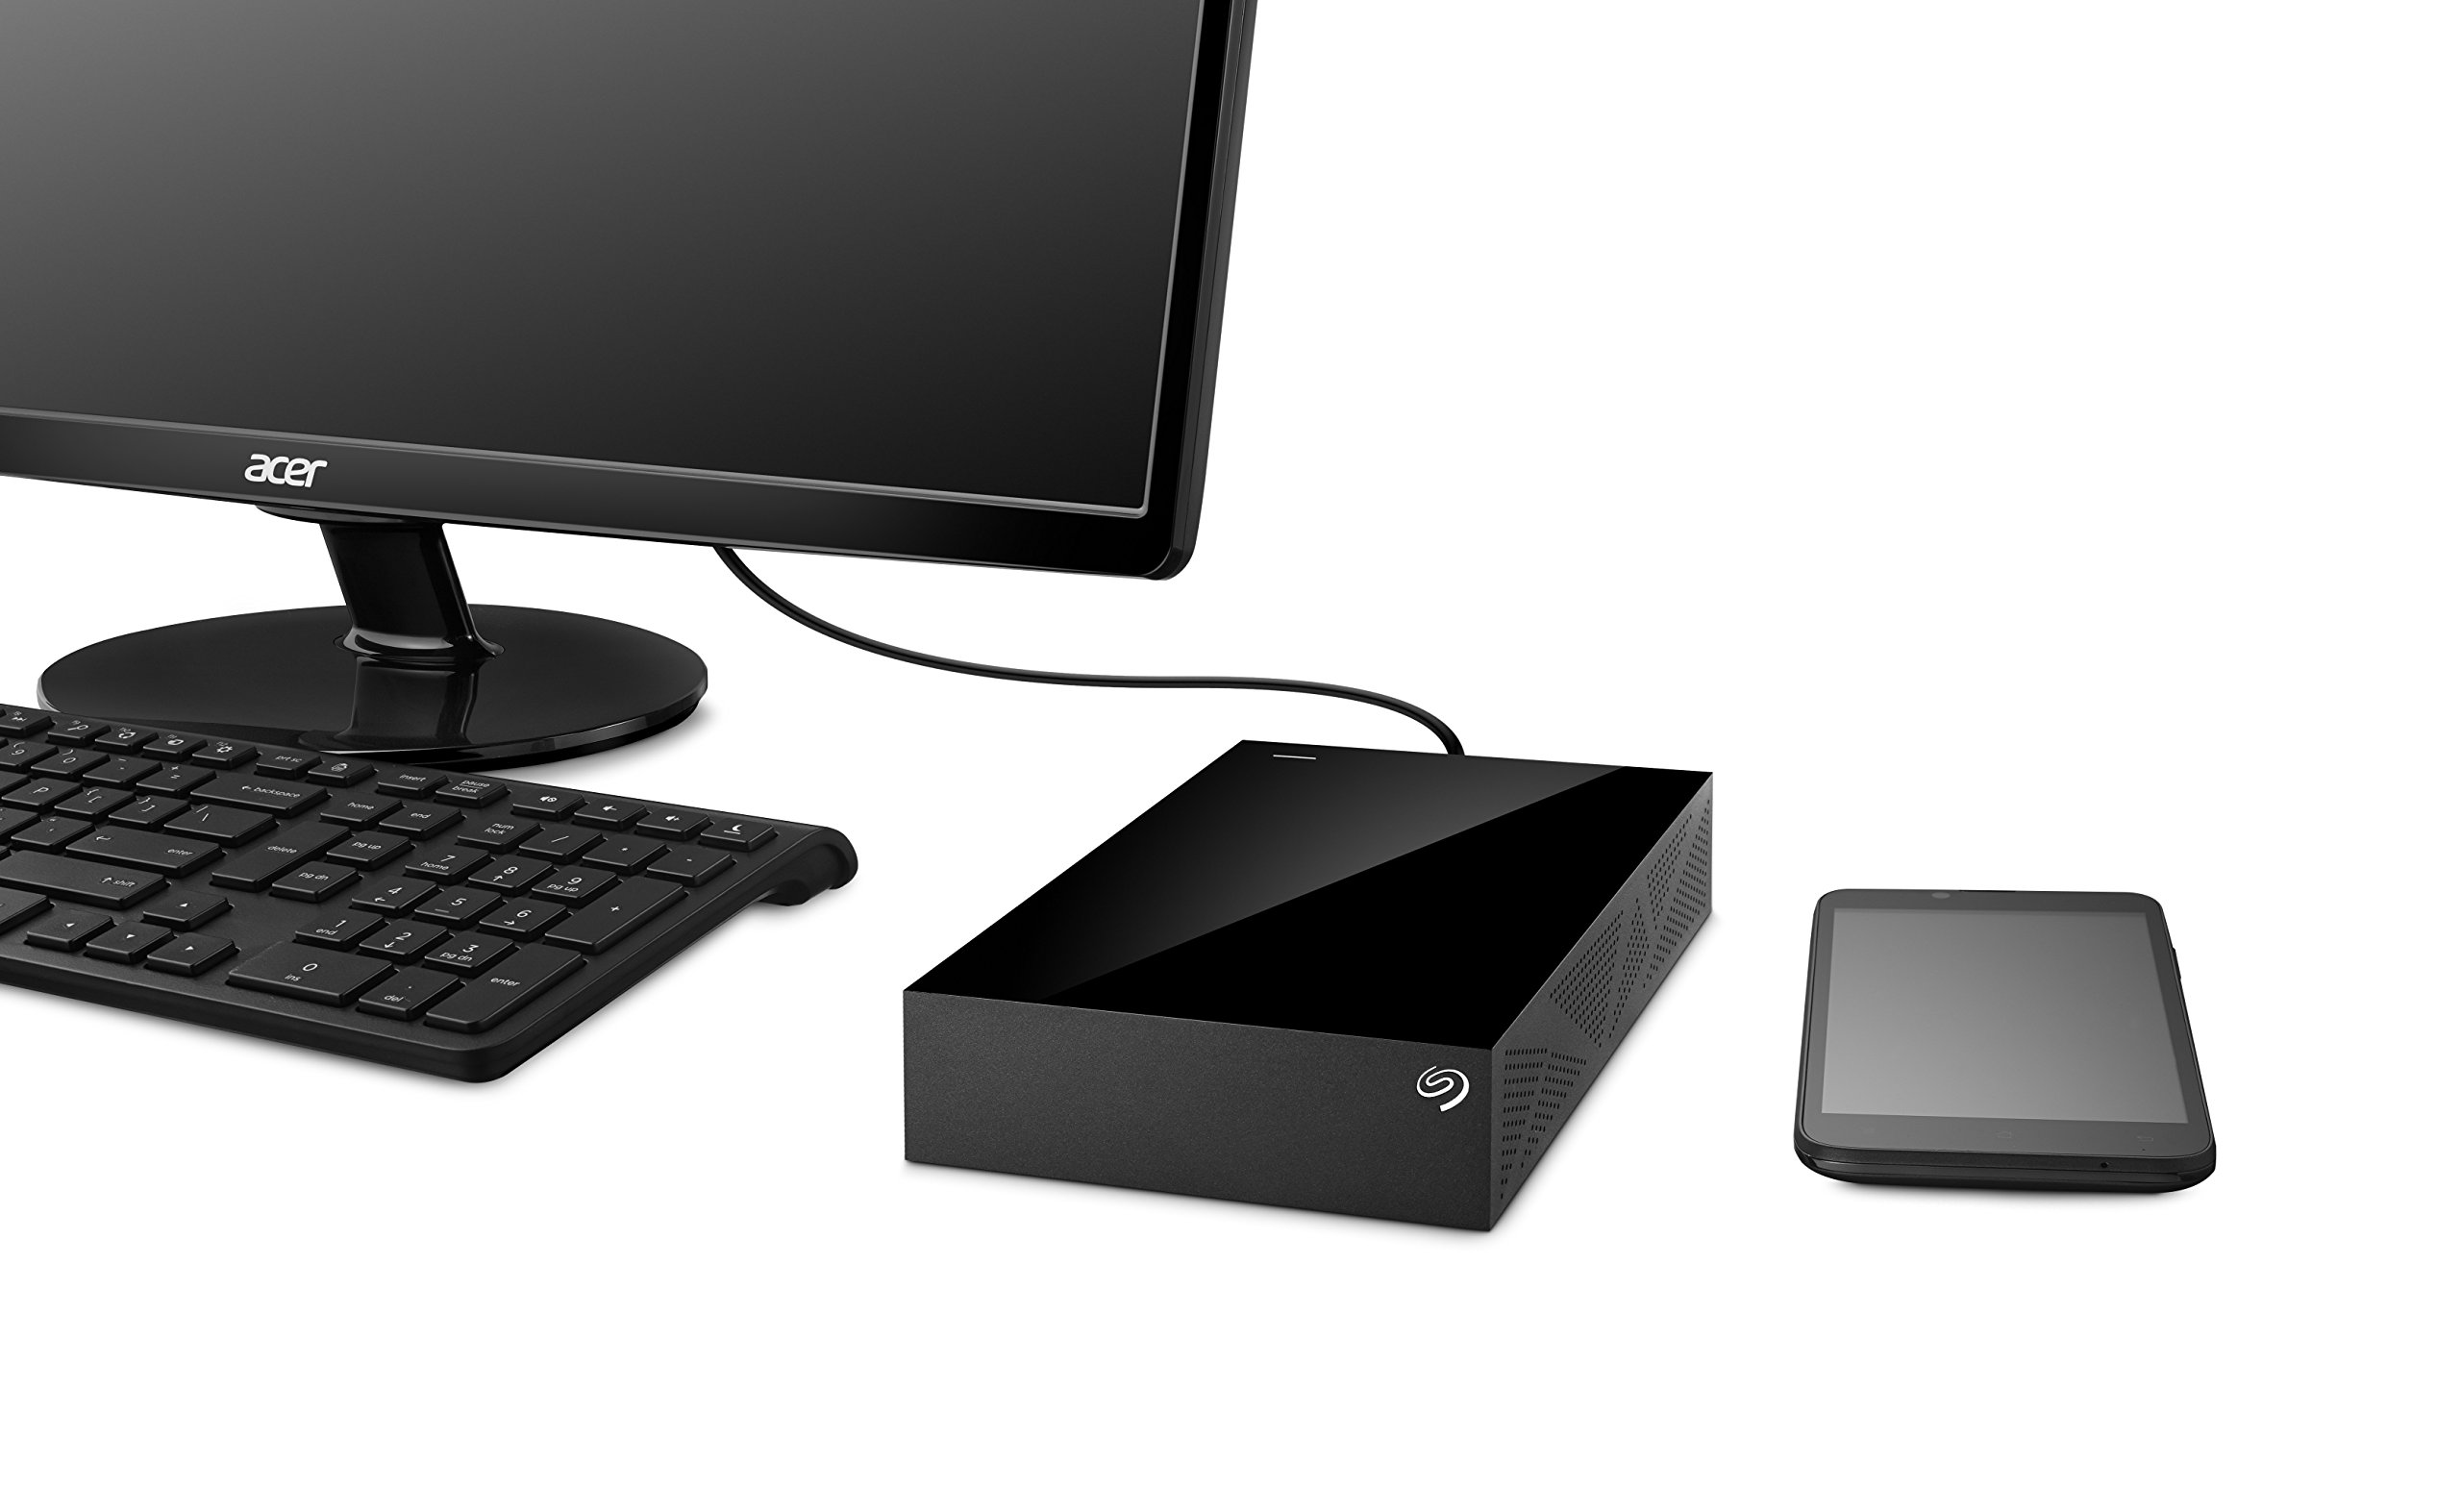 Seagate Desktop 8TB External Hard Drive HDD – USB 3.0 for PC Laptop and Mac (STGY8000400) by Seagate (Image #6)